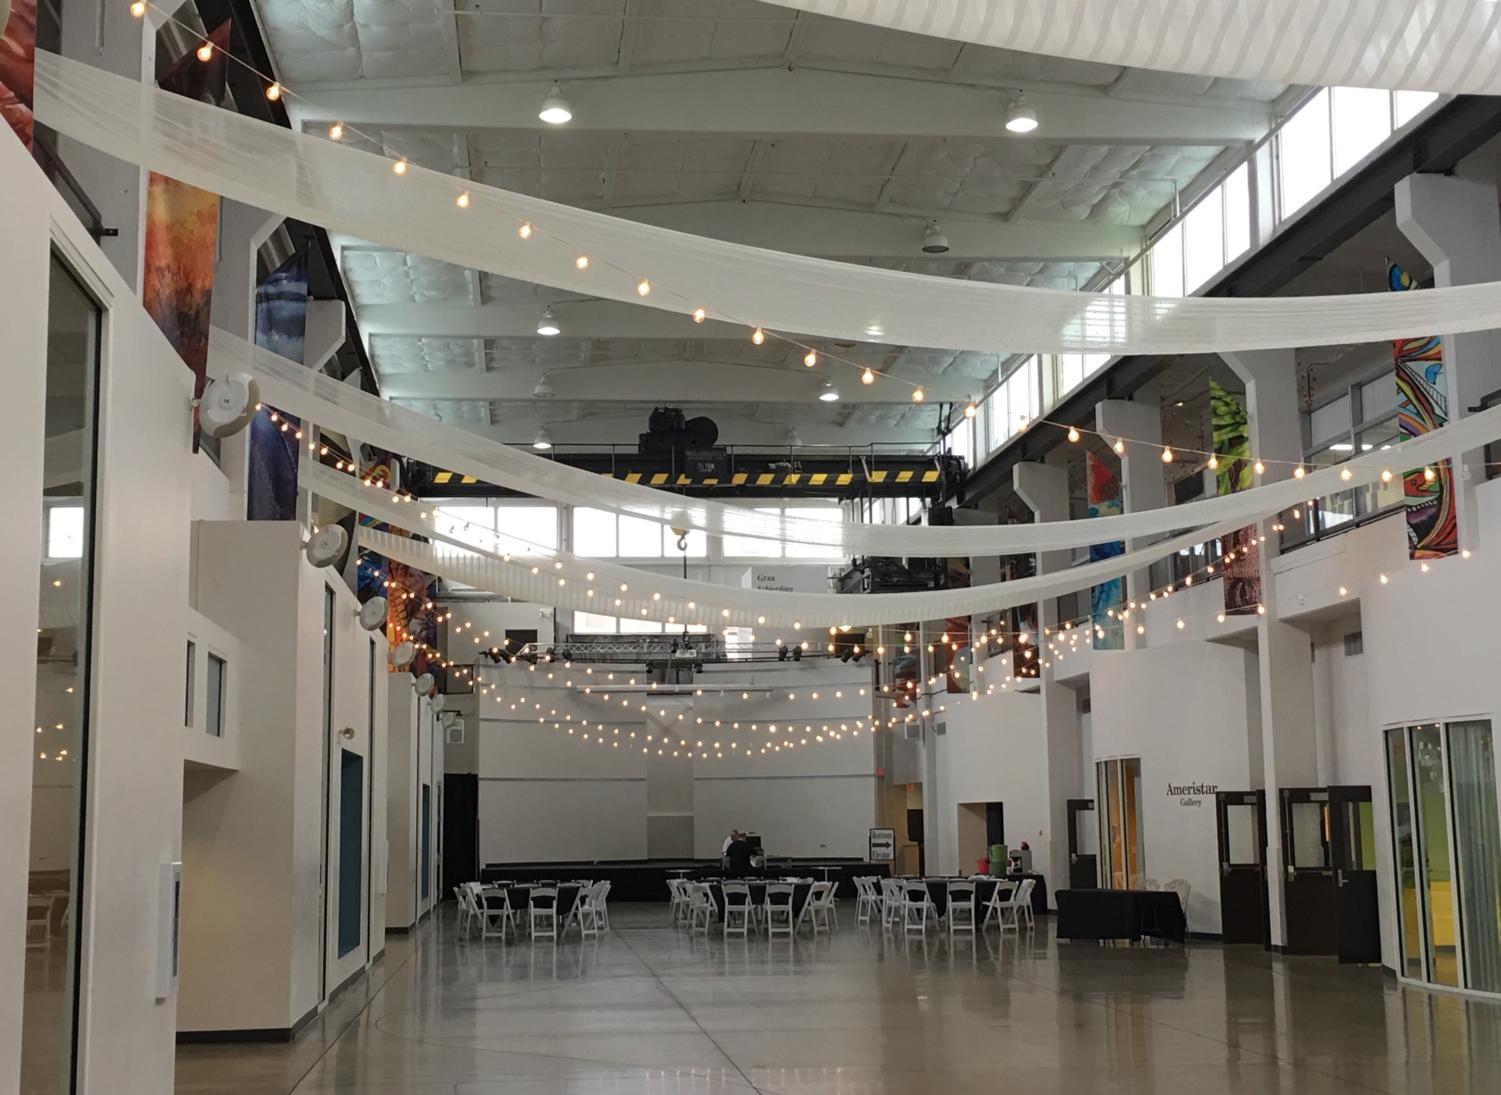 The space in the Foundry Art Centre where prom will be held, called the Grand Hall.